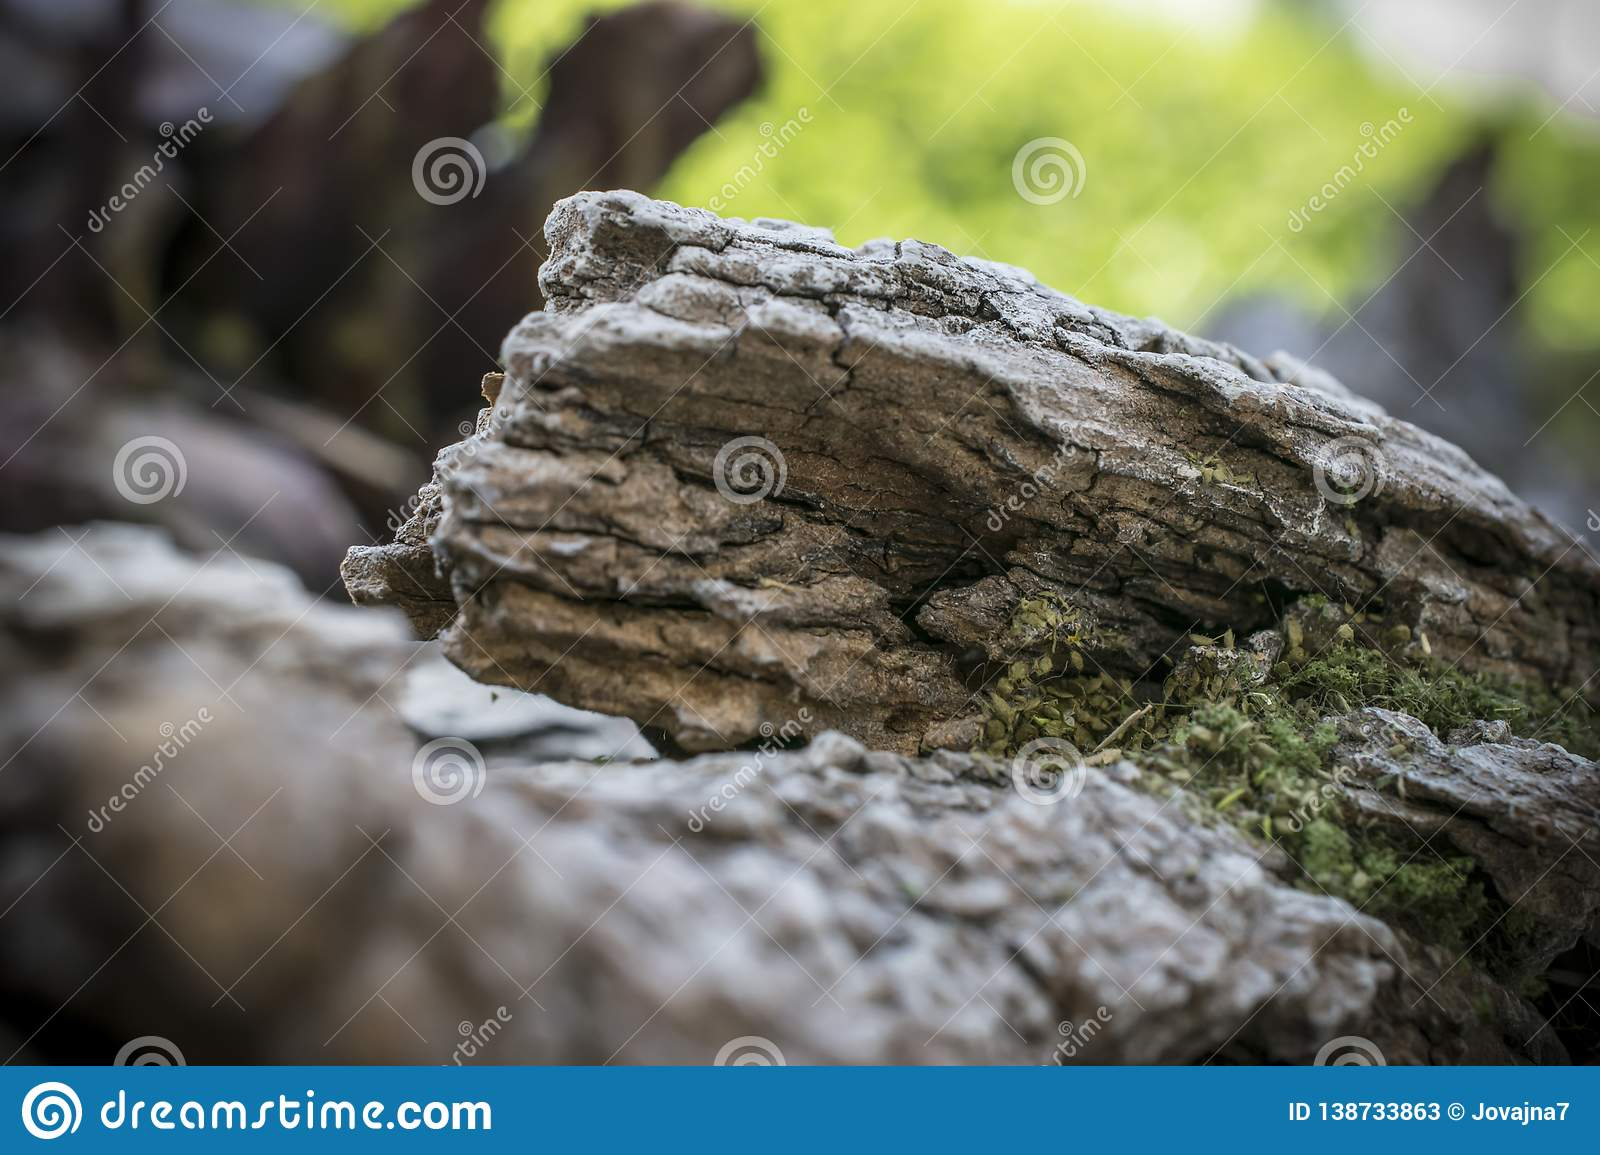 Close-up Of Details Of Wargaming Terrain Stock Image - Image of